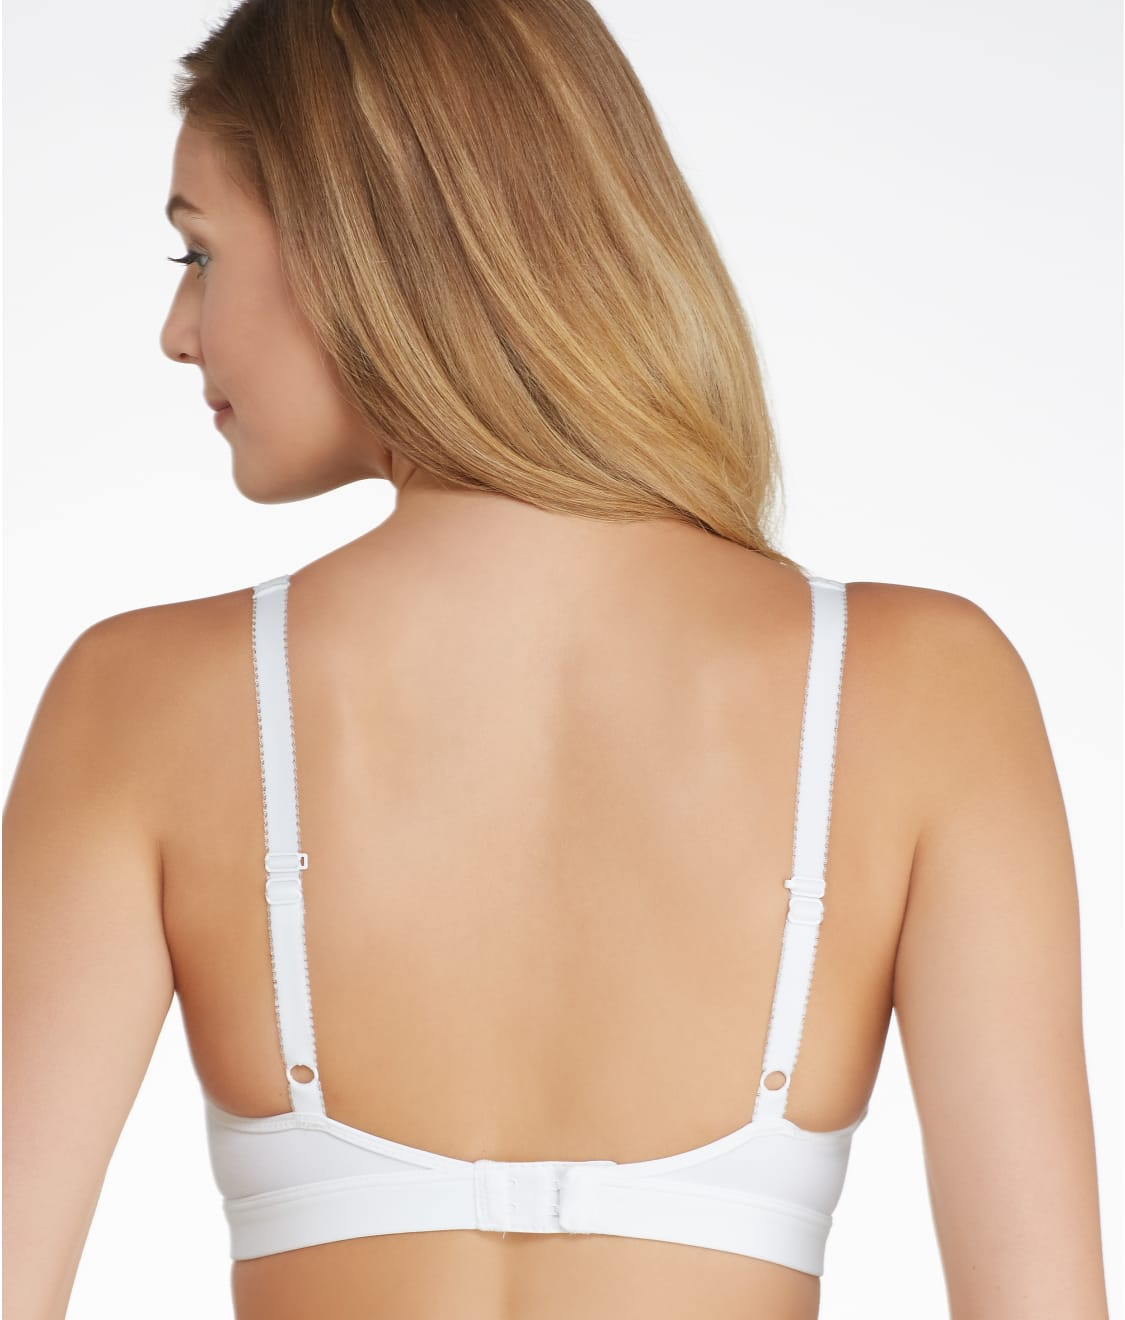 4e48bed32635f See Body By Wacoal Convertible Wire-Free Bra in White